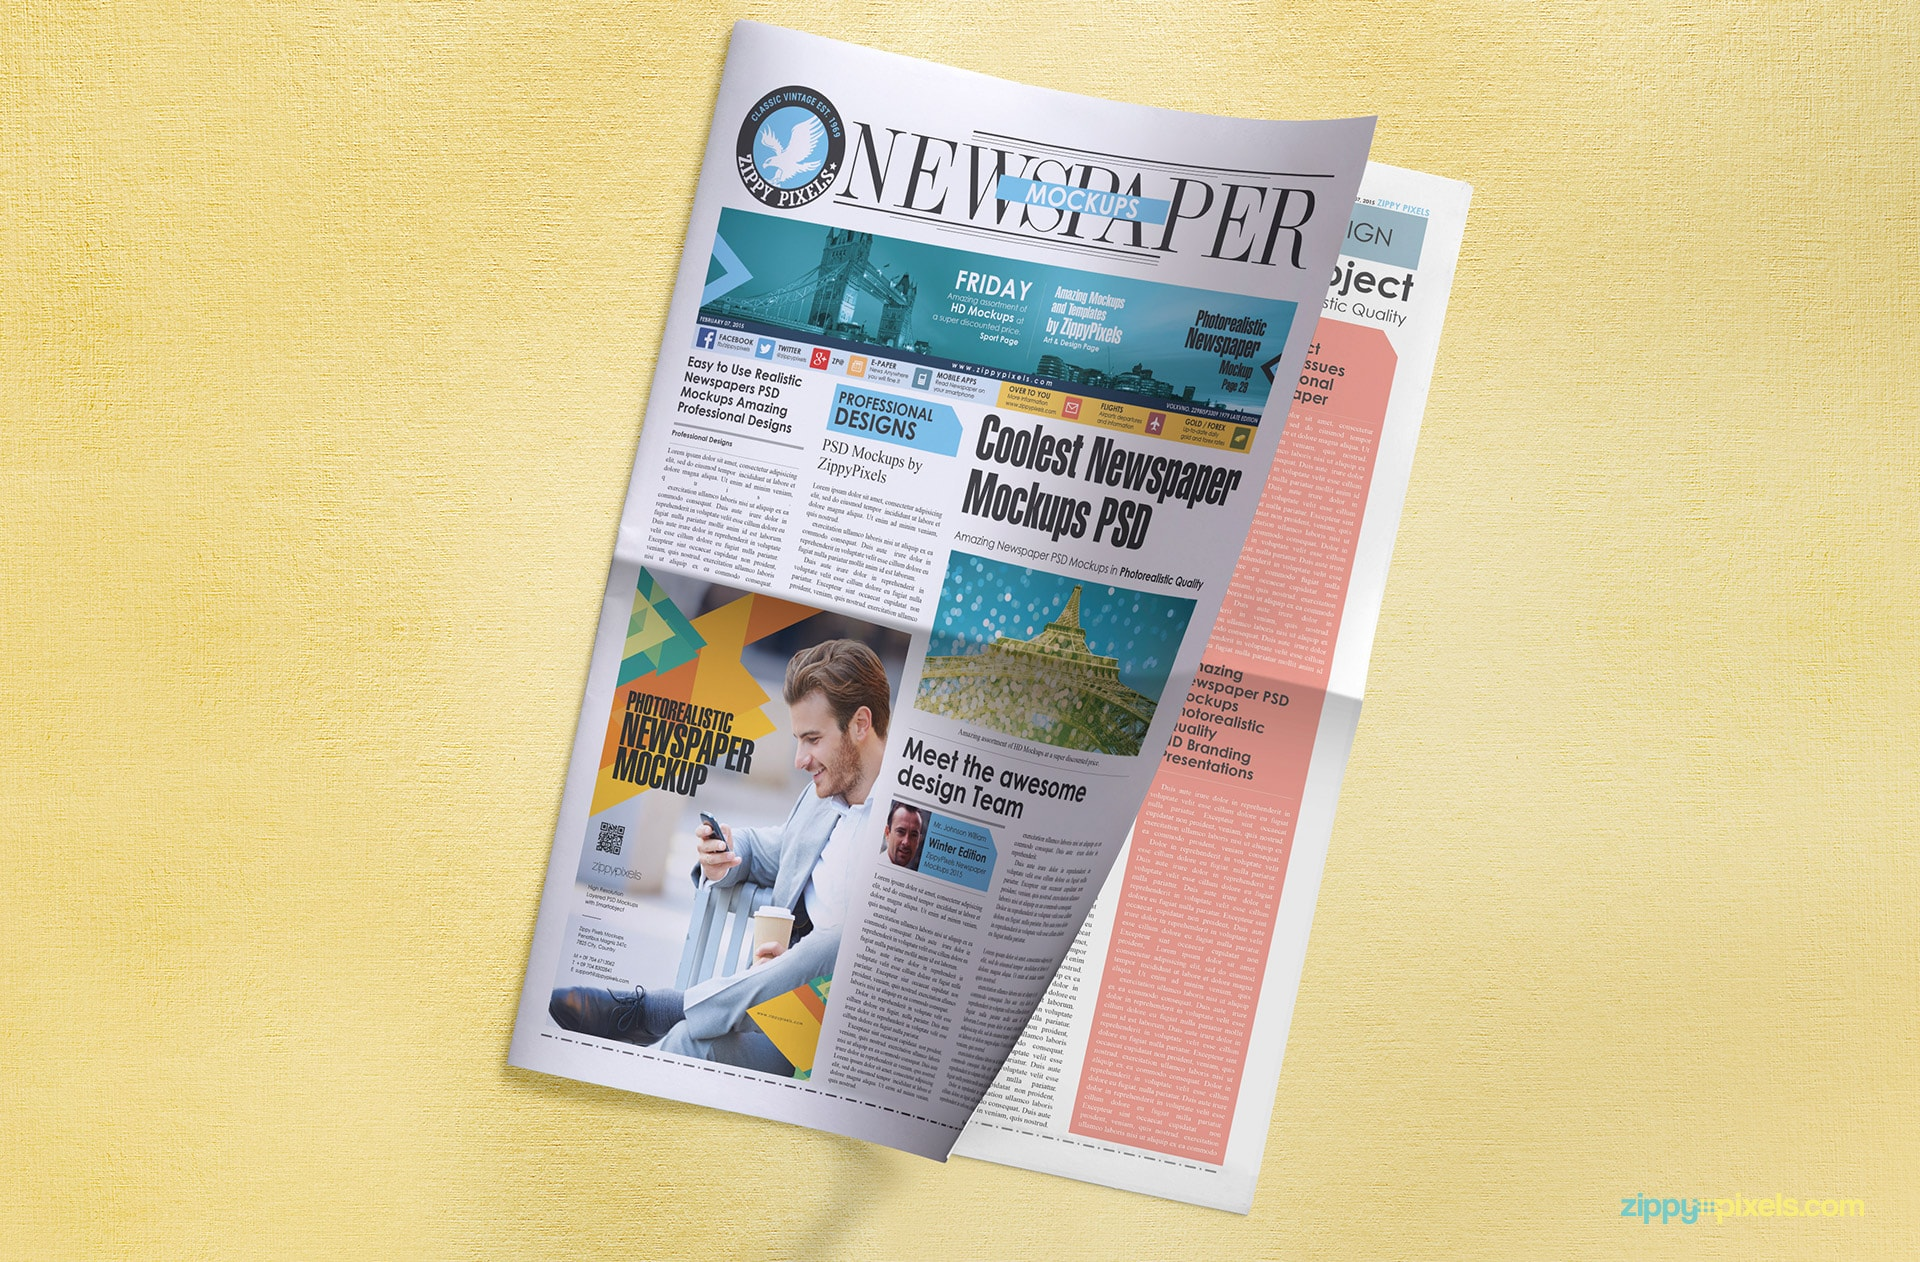 PSD Mockup showing front page of tabloid newspaper giving view of a quarter page ad space and peak at inner page